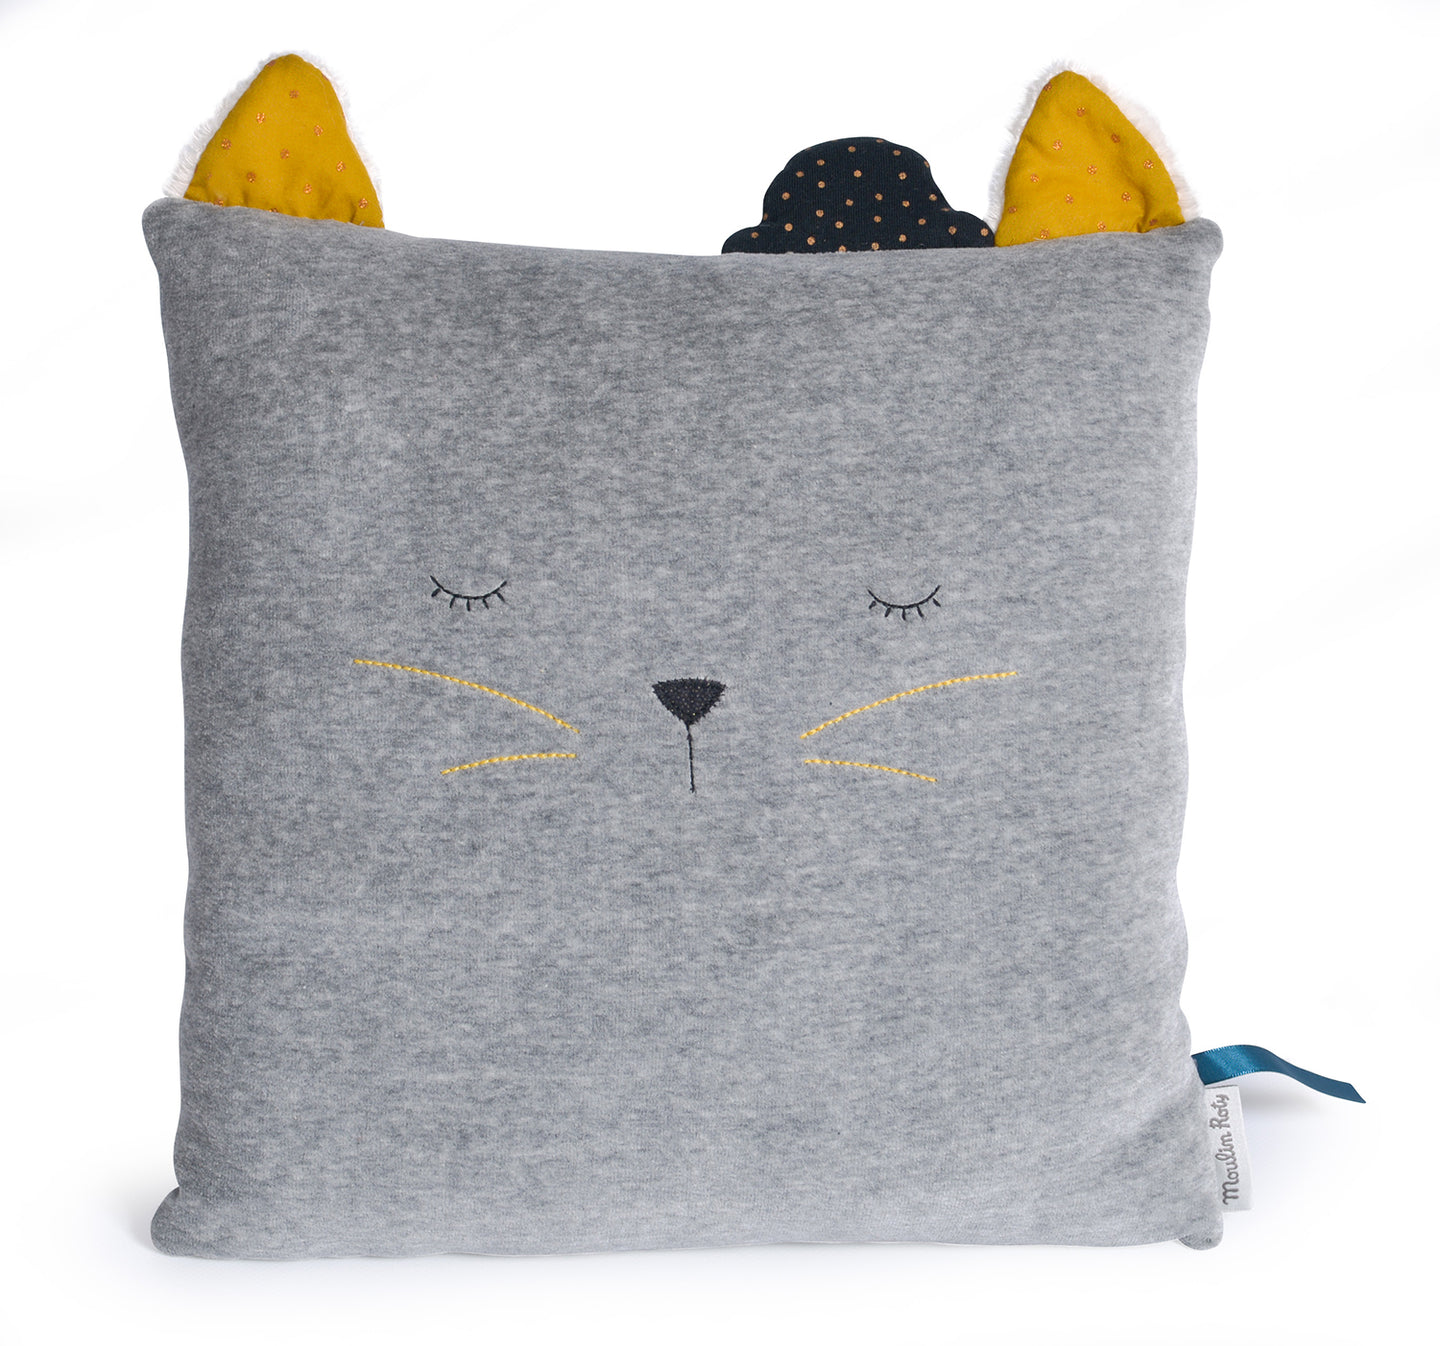 This grey 30 x 30 cm cushion is ideal to decorate baby's room, on the bed or on a seat. It features Alphonse the Cat from Moulin Roty's Les Moustaches range with his very soft ears and a polka dot bowler hat sleeping.